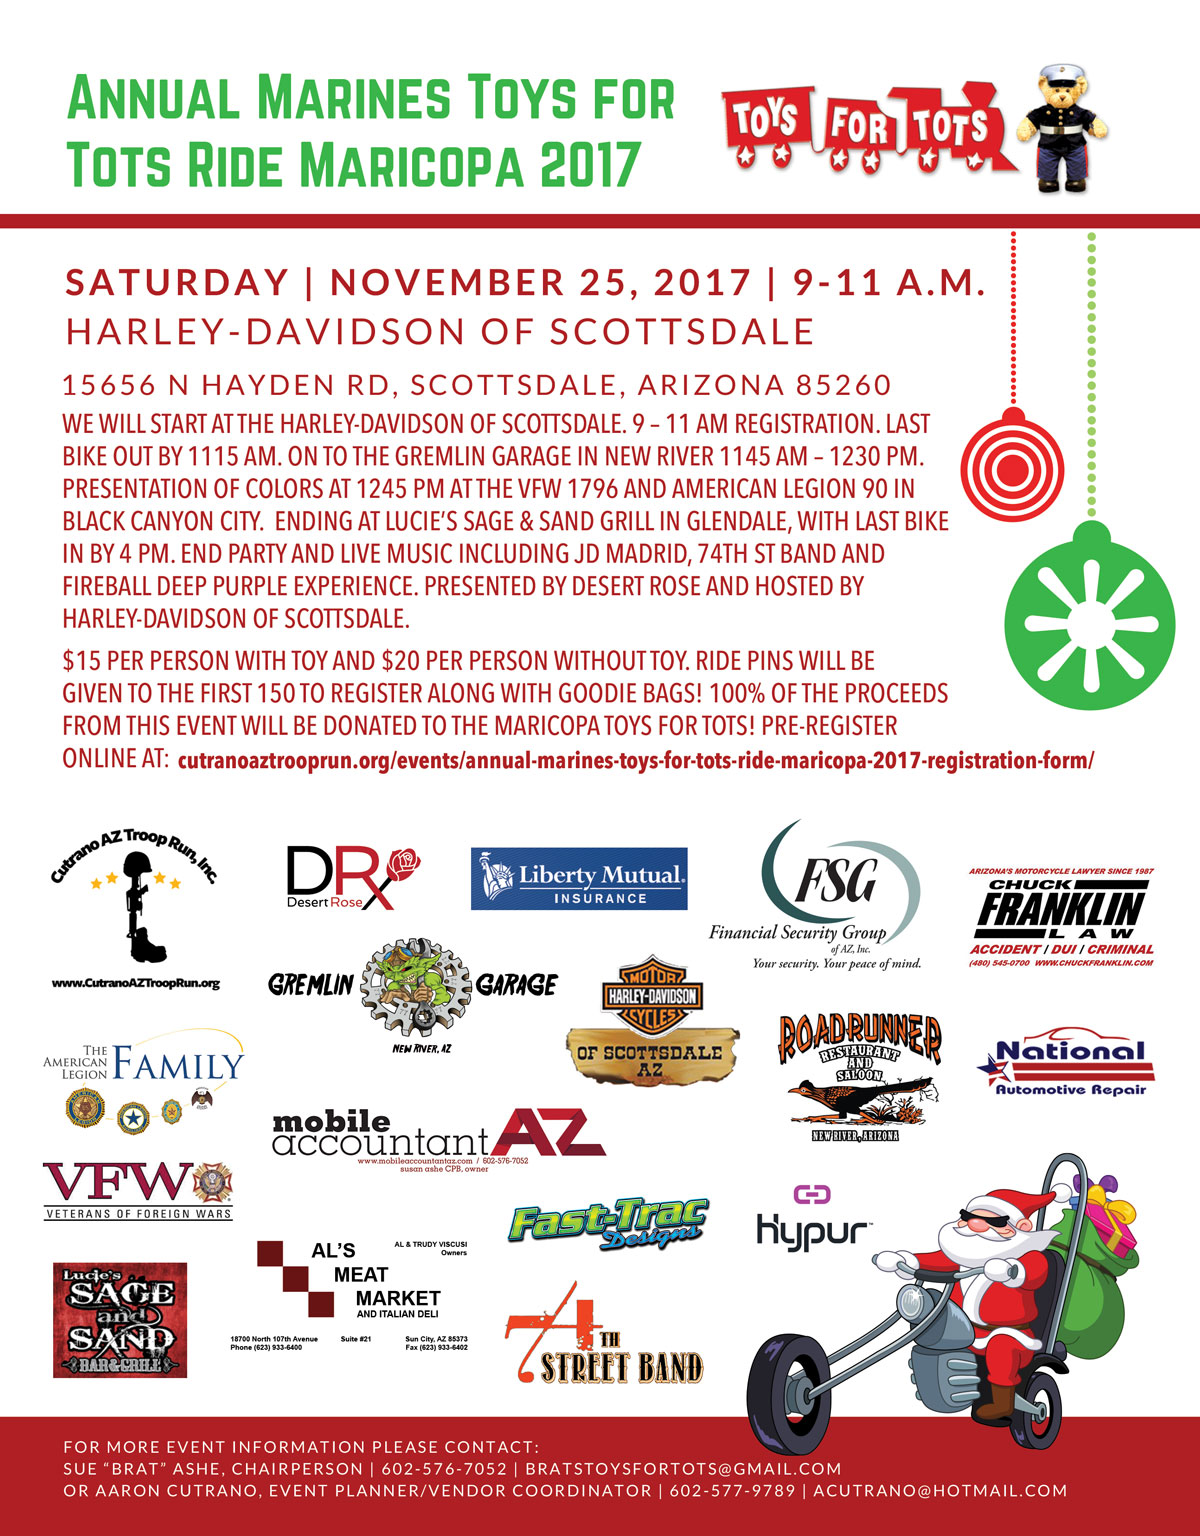 Annual Marines Toys for Tots Ride Maricopa 2017